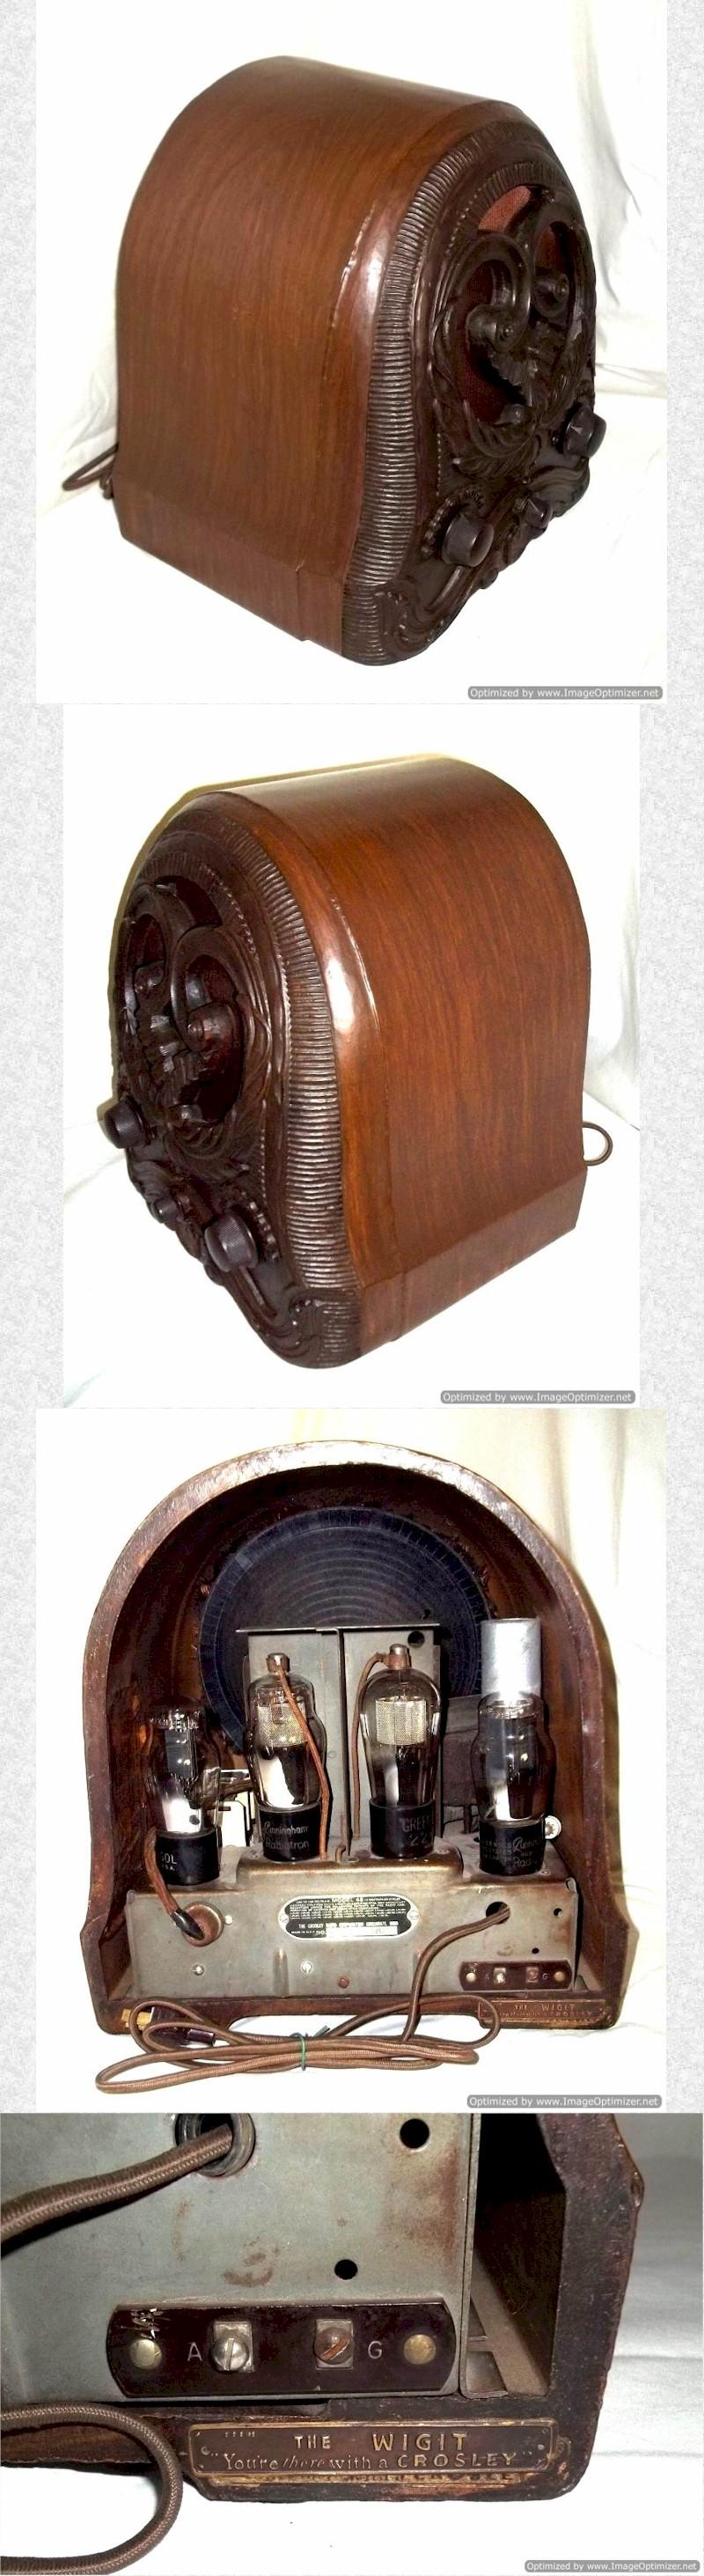 "Crosley 48 ""The Wigit"" Mini-Cathedral (1931)"